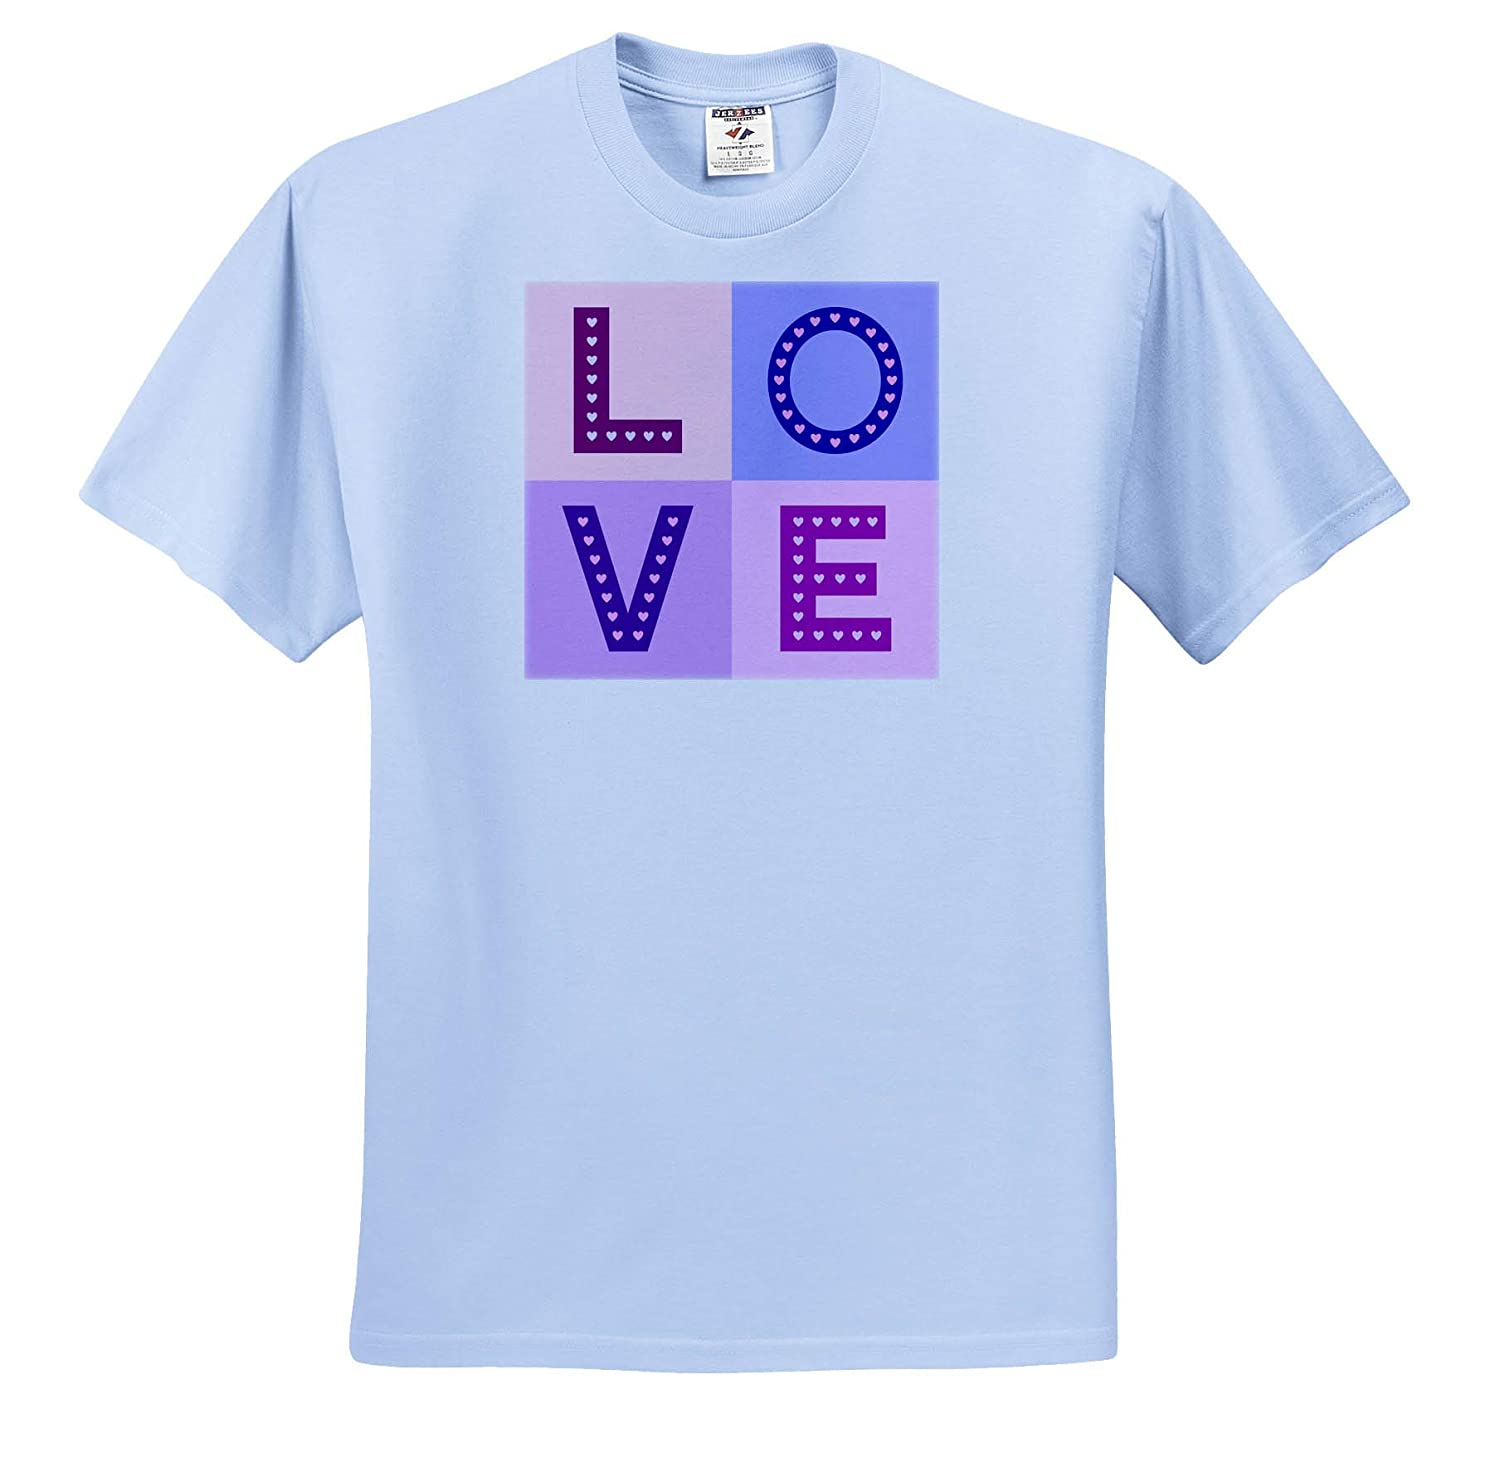 T-Shirts Typographic Designs 3dRose Natalie Paskell Love Capital Letters with Hearts Pinks and Purples